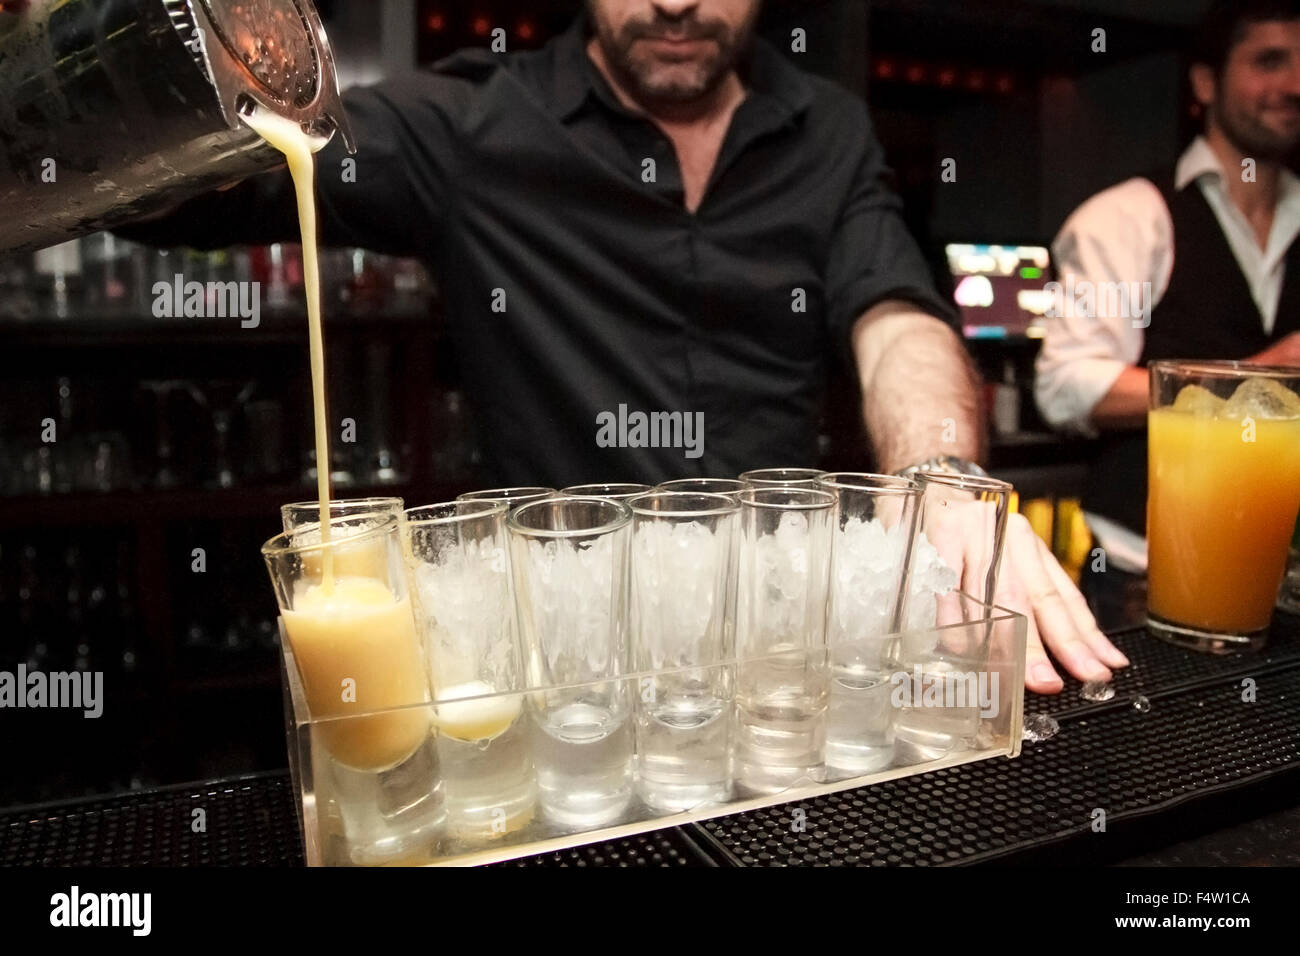 Bartender pouring cocktail shots on a tray full of shot glasses - Stock Image